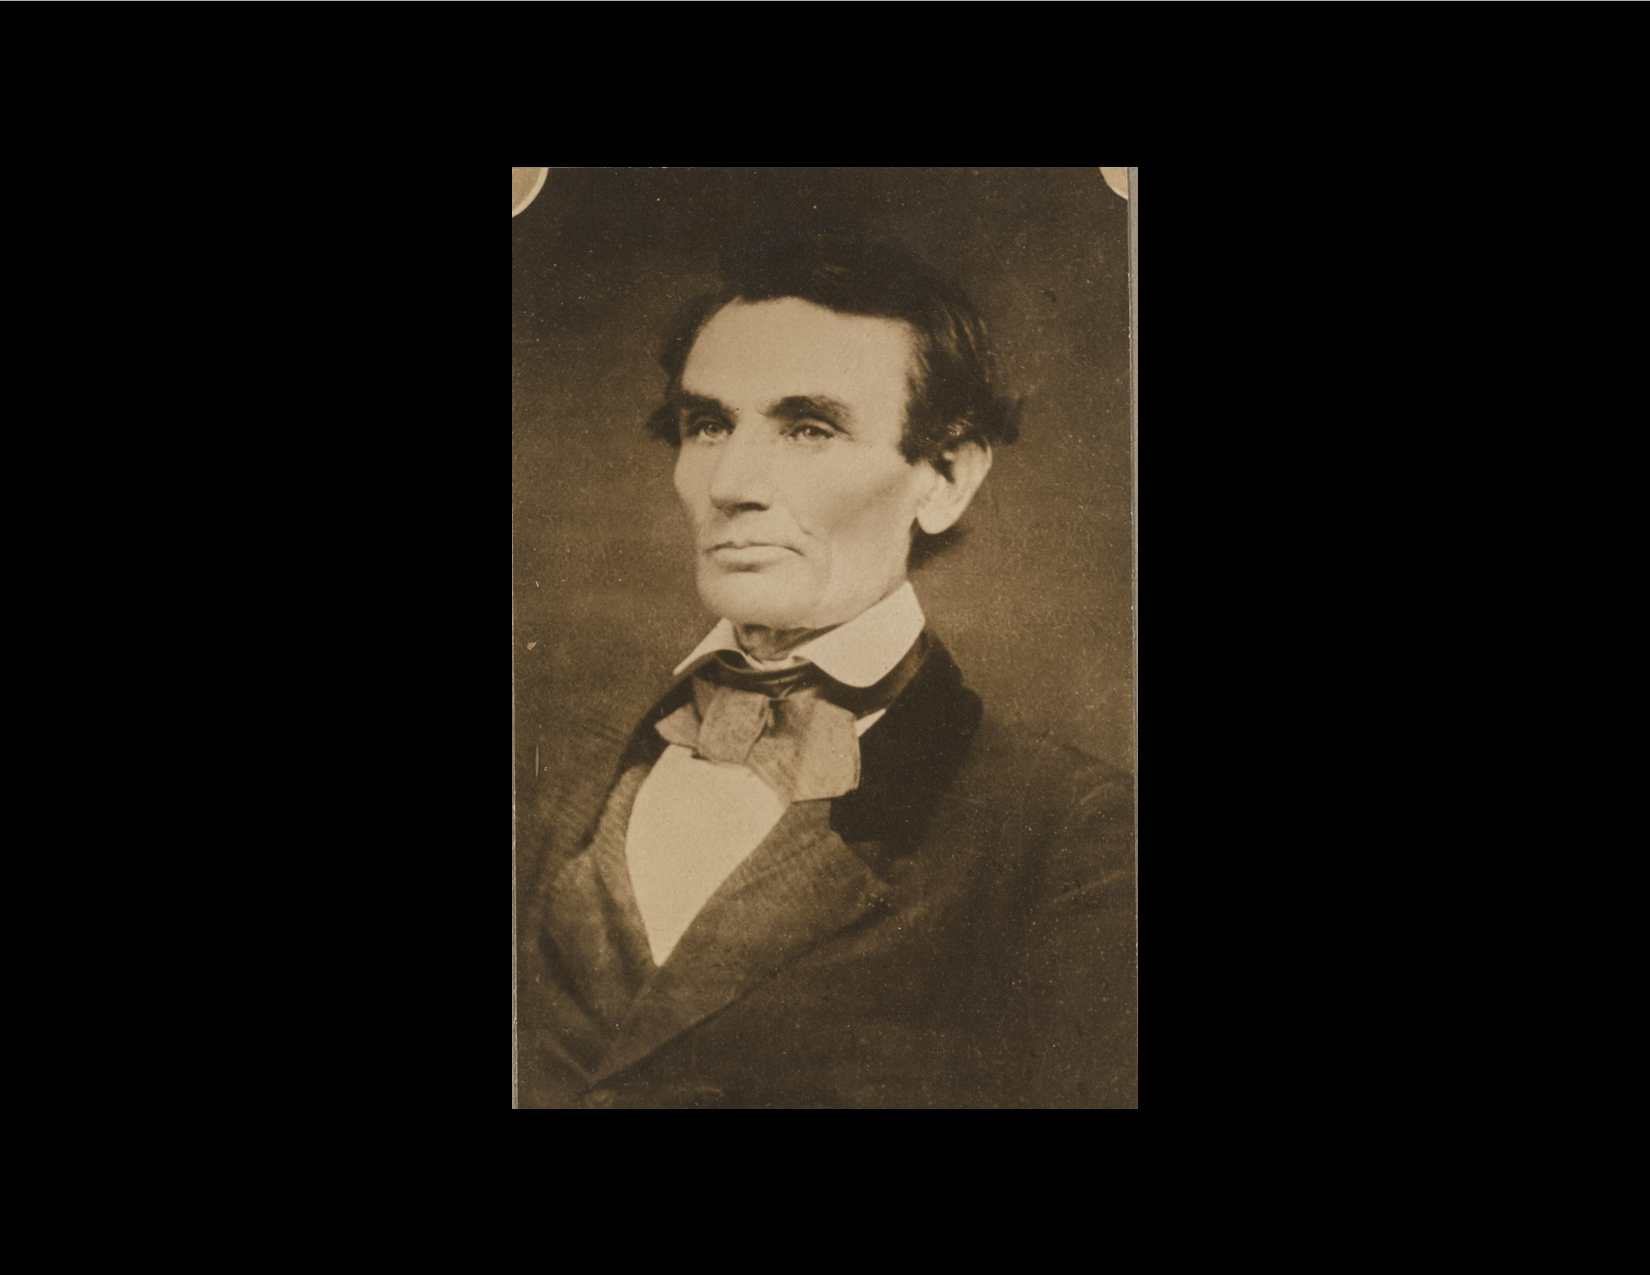 This photograph was taken by Alschuler at his photography studio in Urbana. A Busey Bank now stands near where the photography studio once was in downtown Urbana. It is the 3rd ever photo taken of Abe Lincoln.